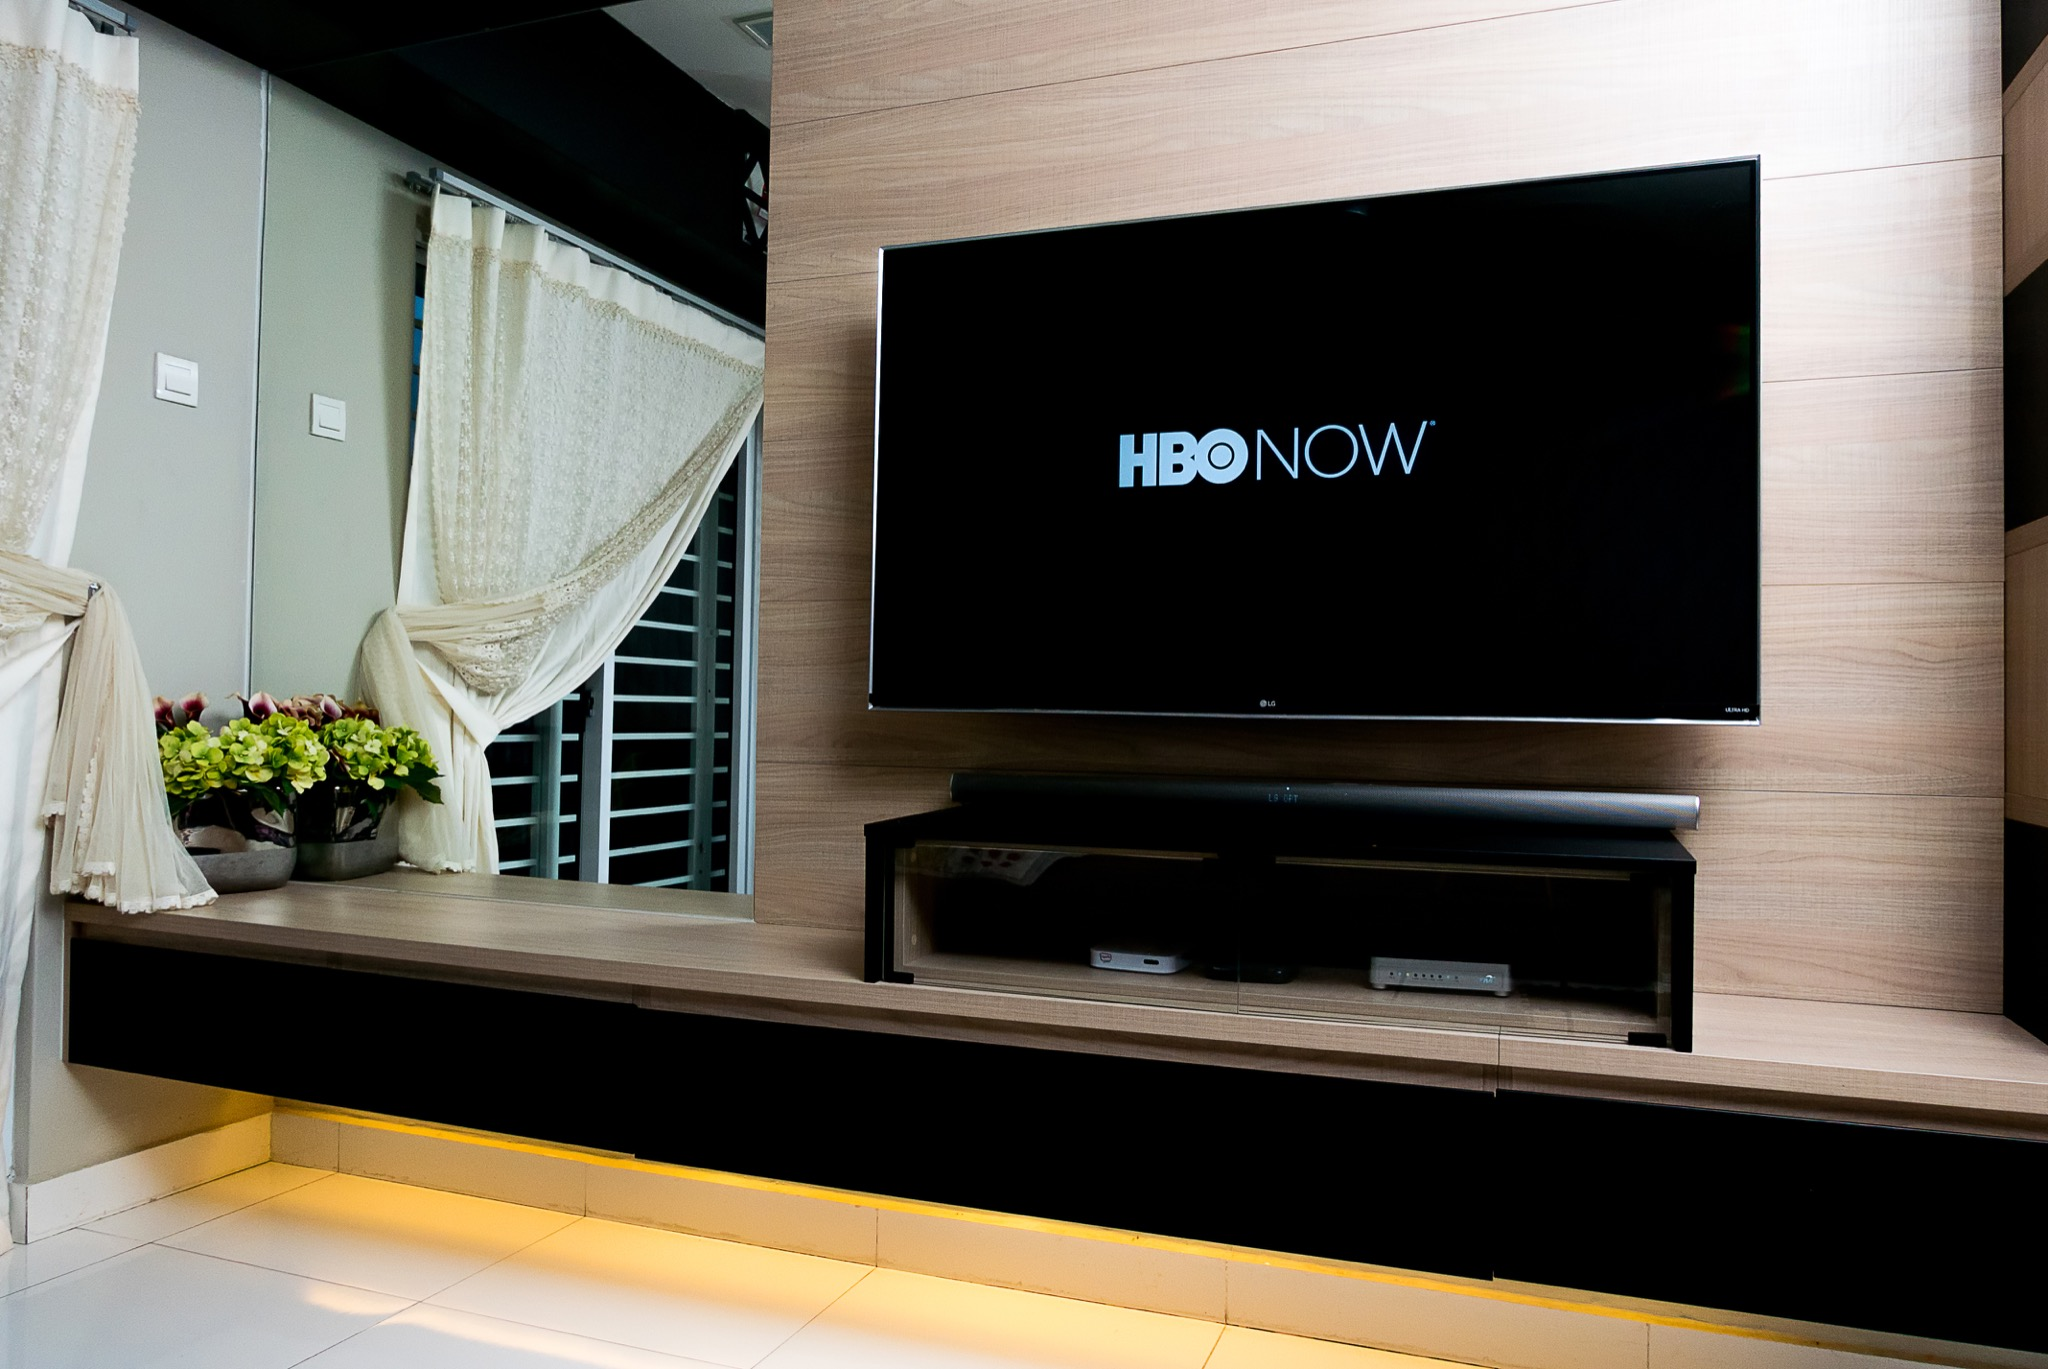 KUALA LUMPUR, MALAYSIA - SEPTEMBER 7TH, 2018 : Modern lifestyle with LG Android TV to stay connected & browsing media using favourite Apps. TV display HBONow app over dark background. - Image